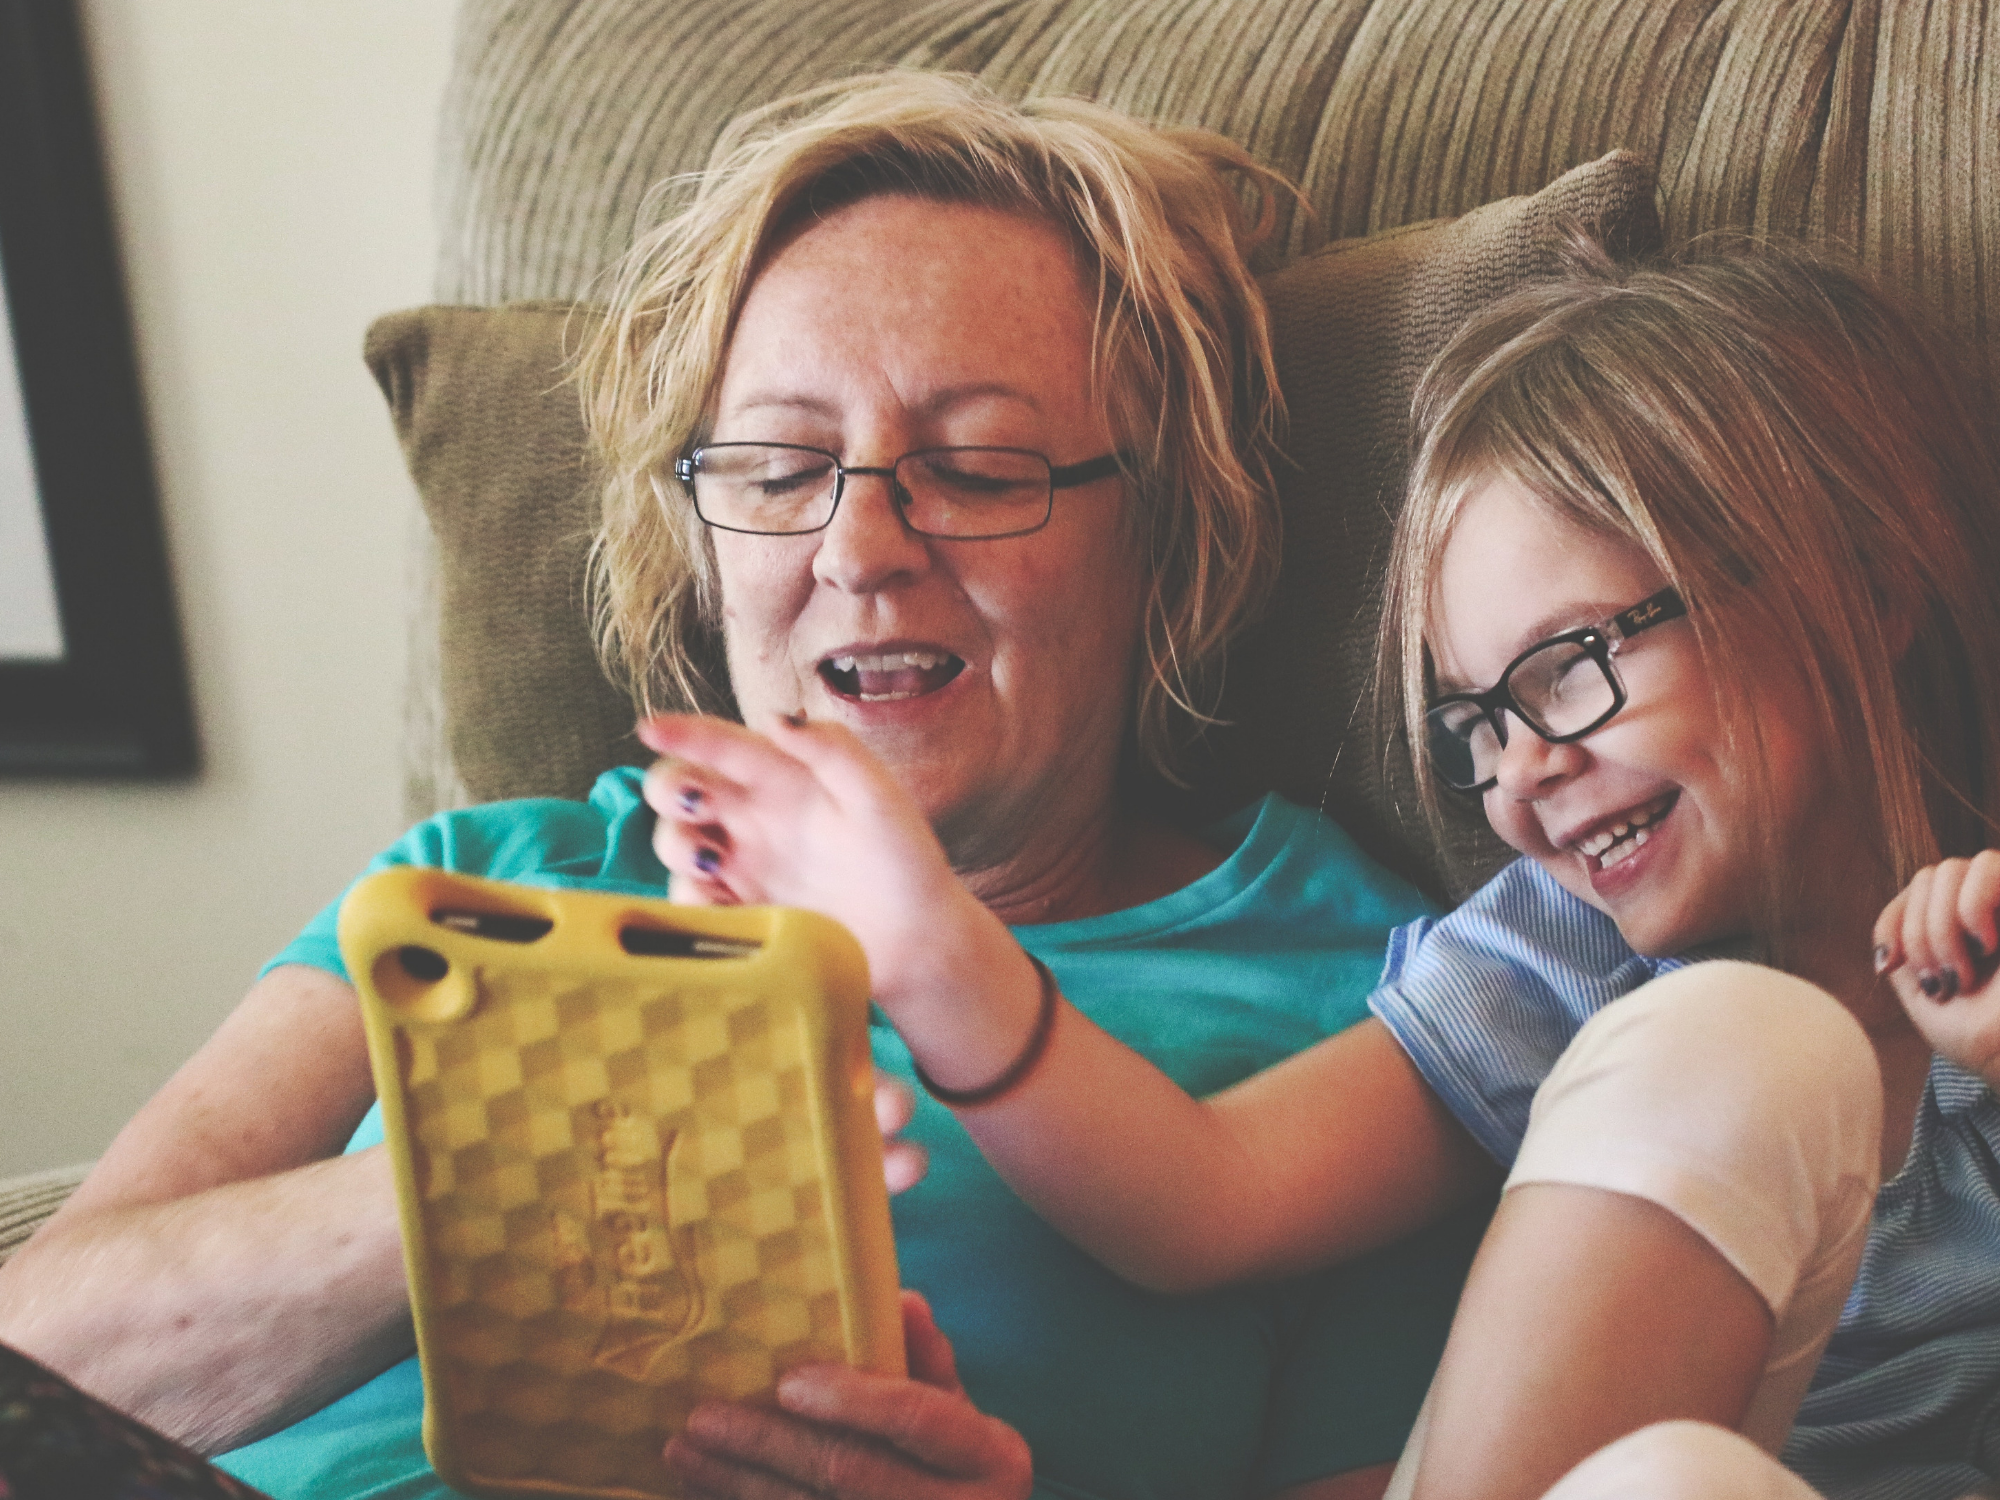 An older lady playing with a young girl on a tablet, both are smiling